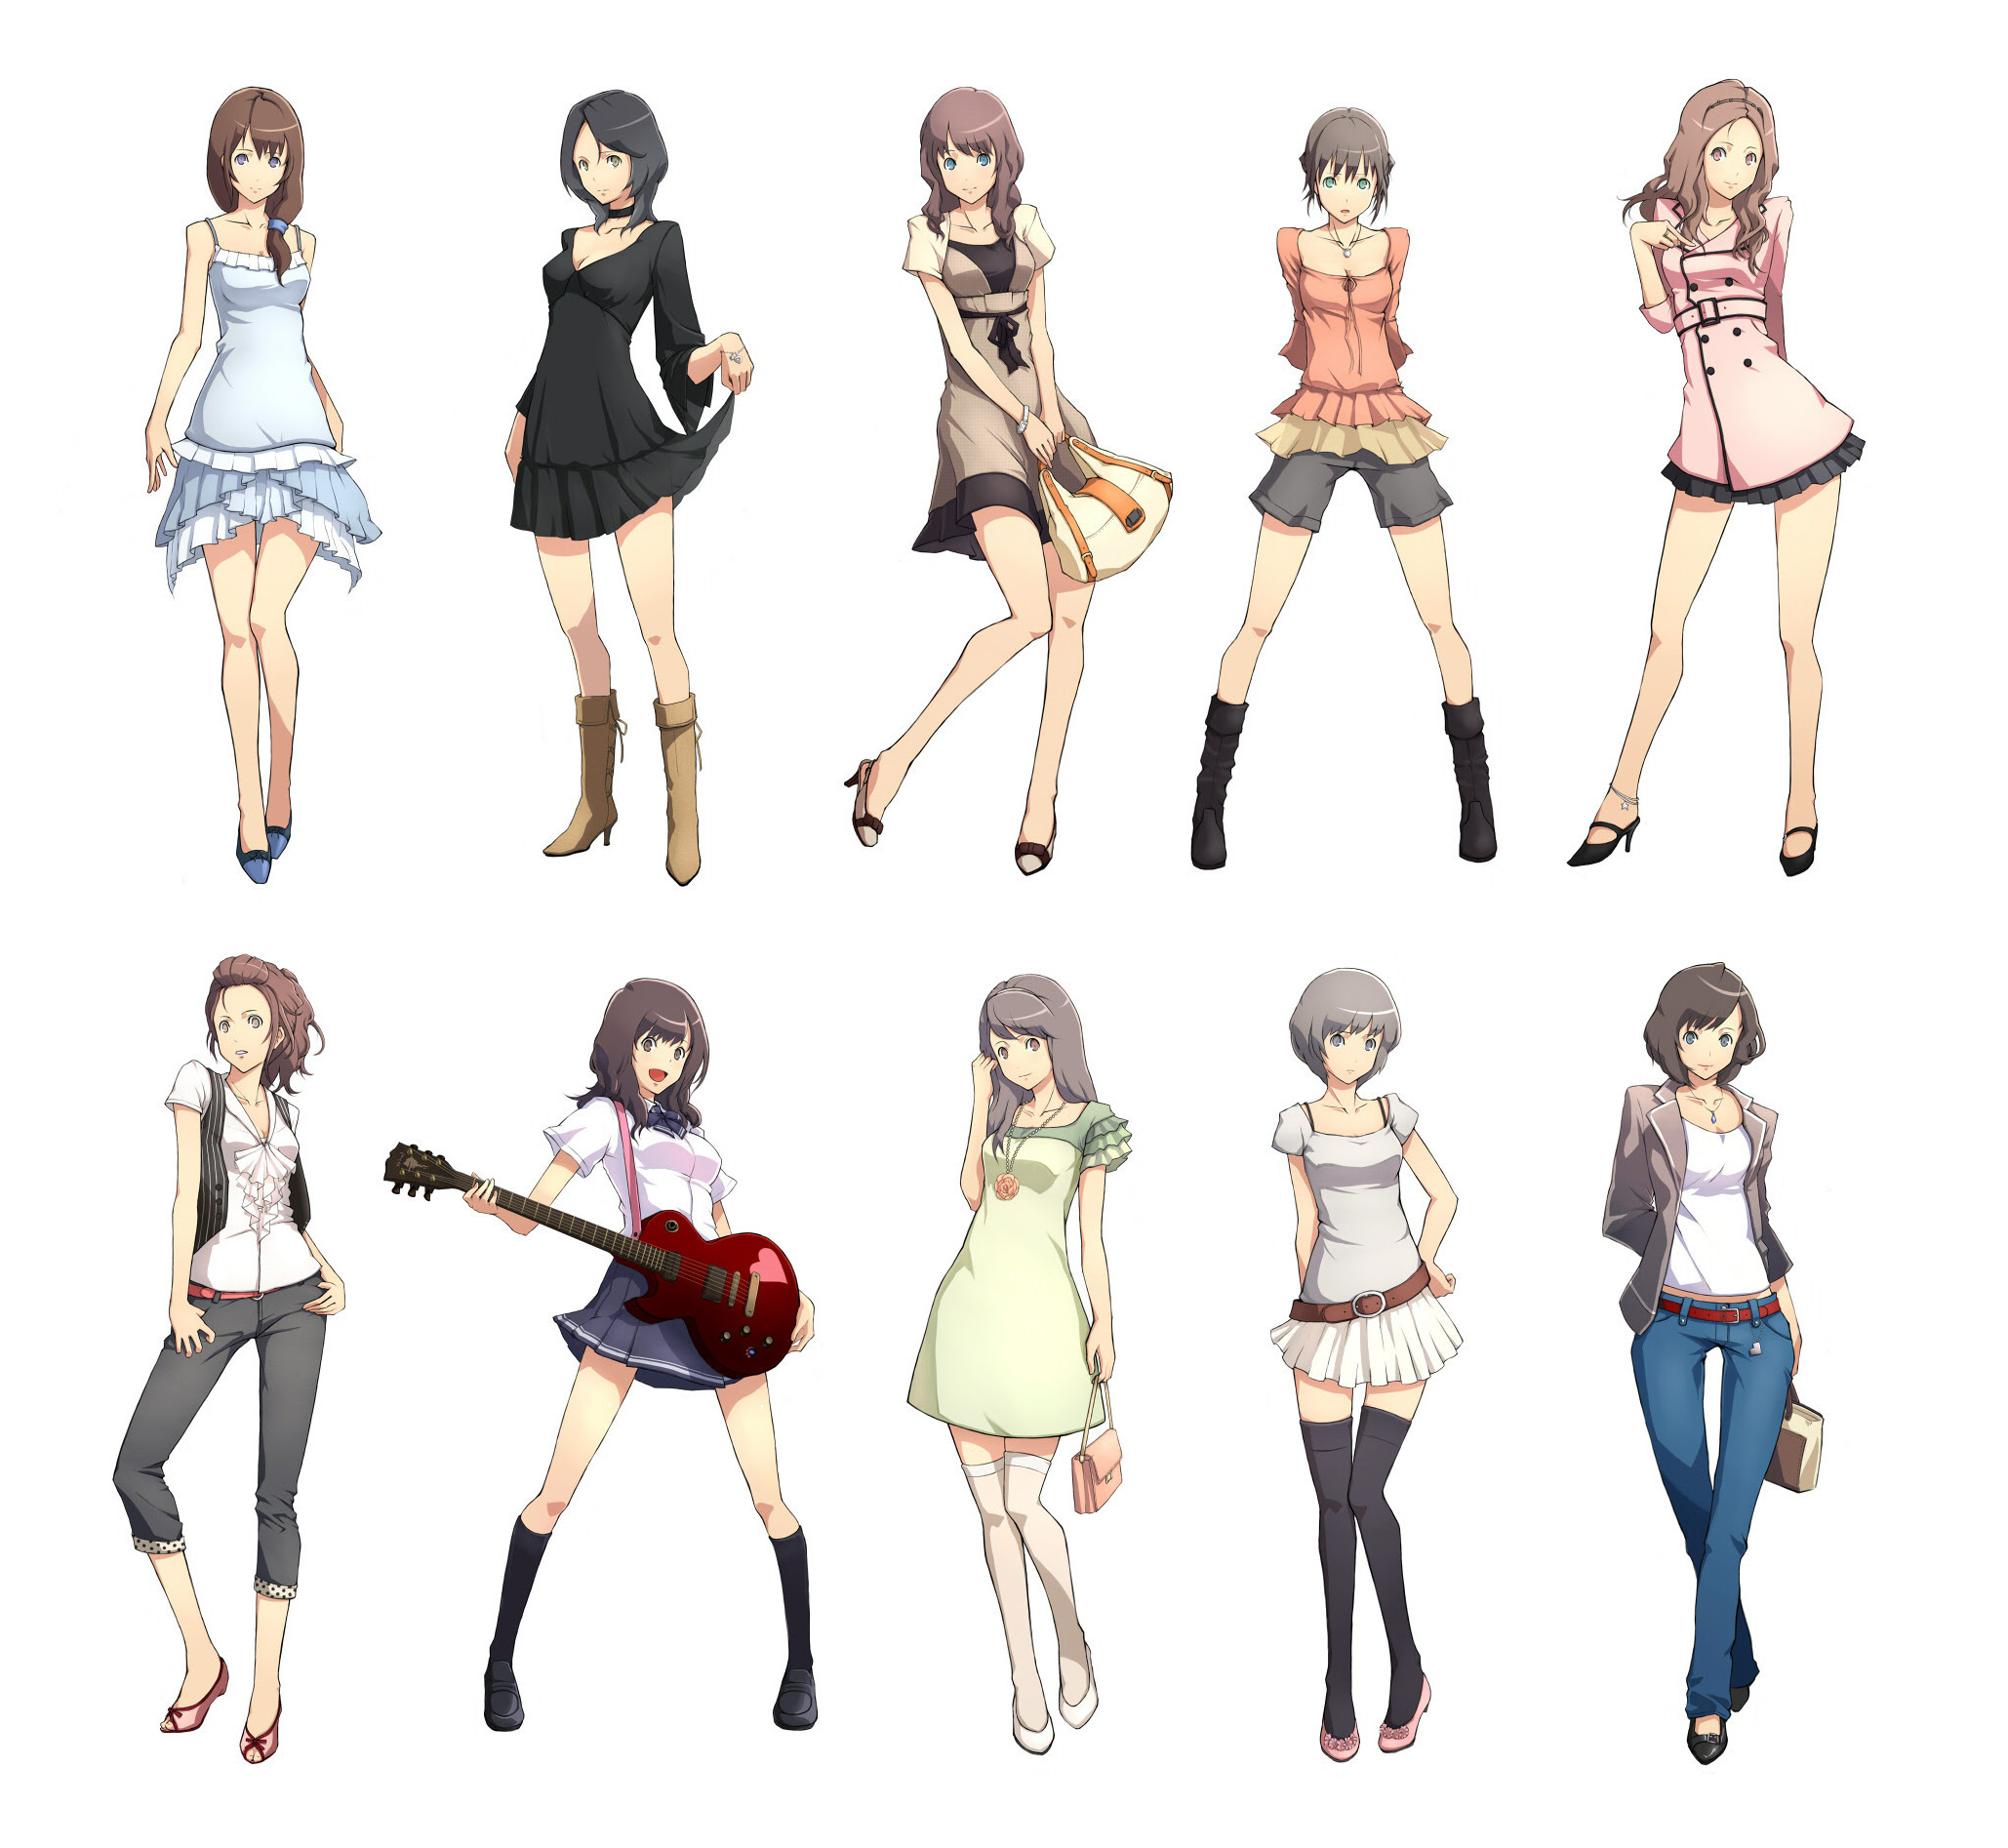 Outfit Ideas: Anime Drawing Outfit Ideas